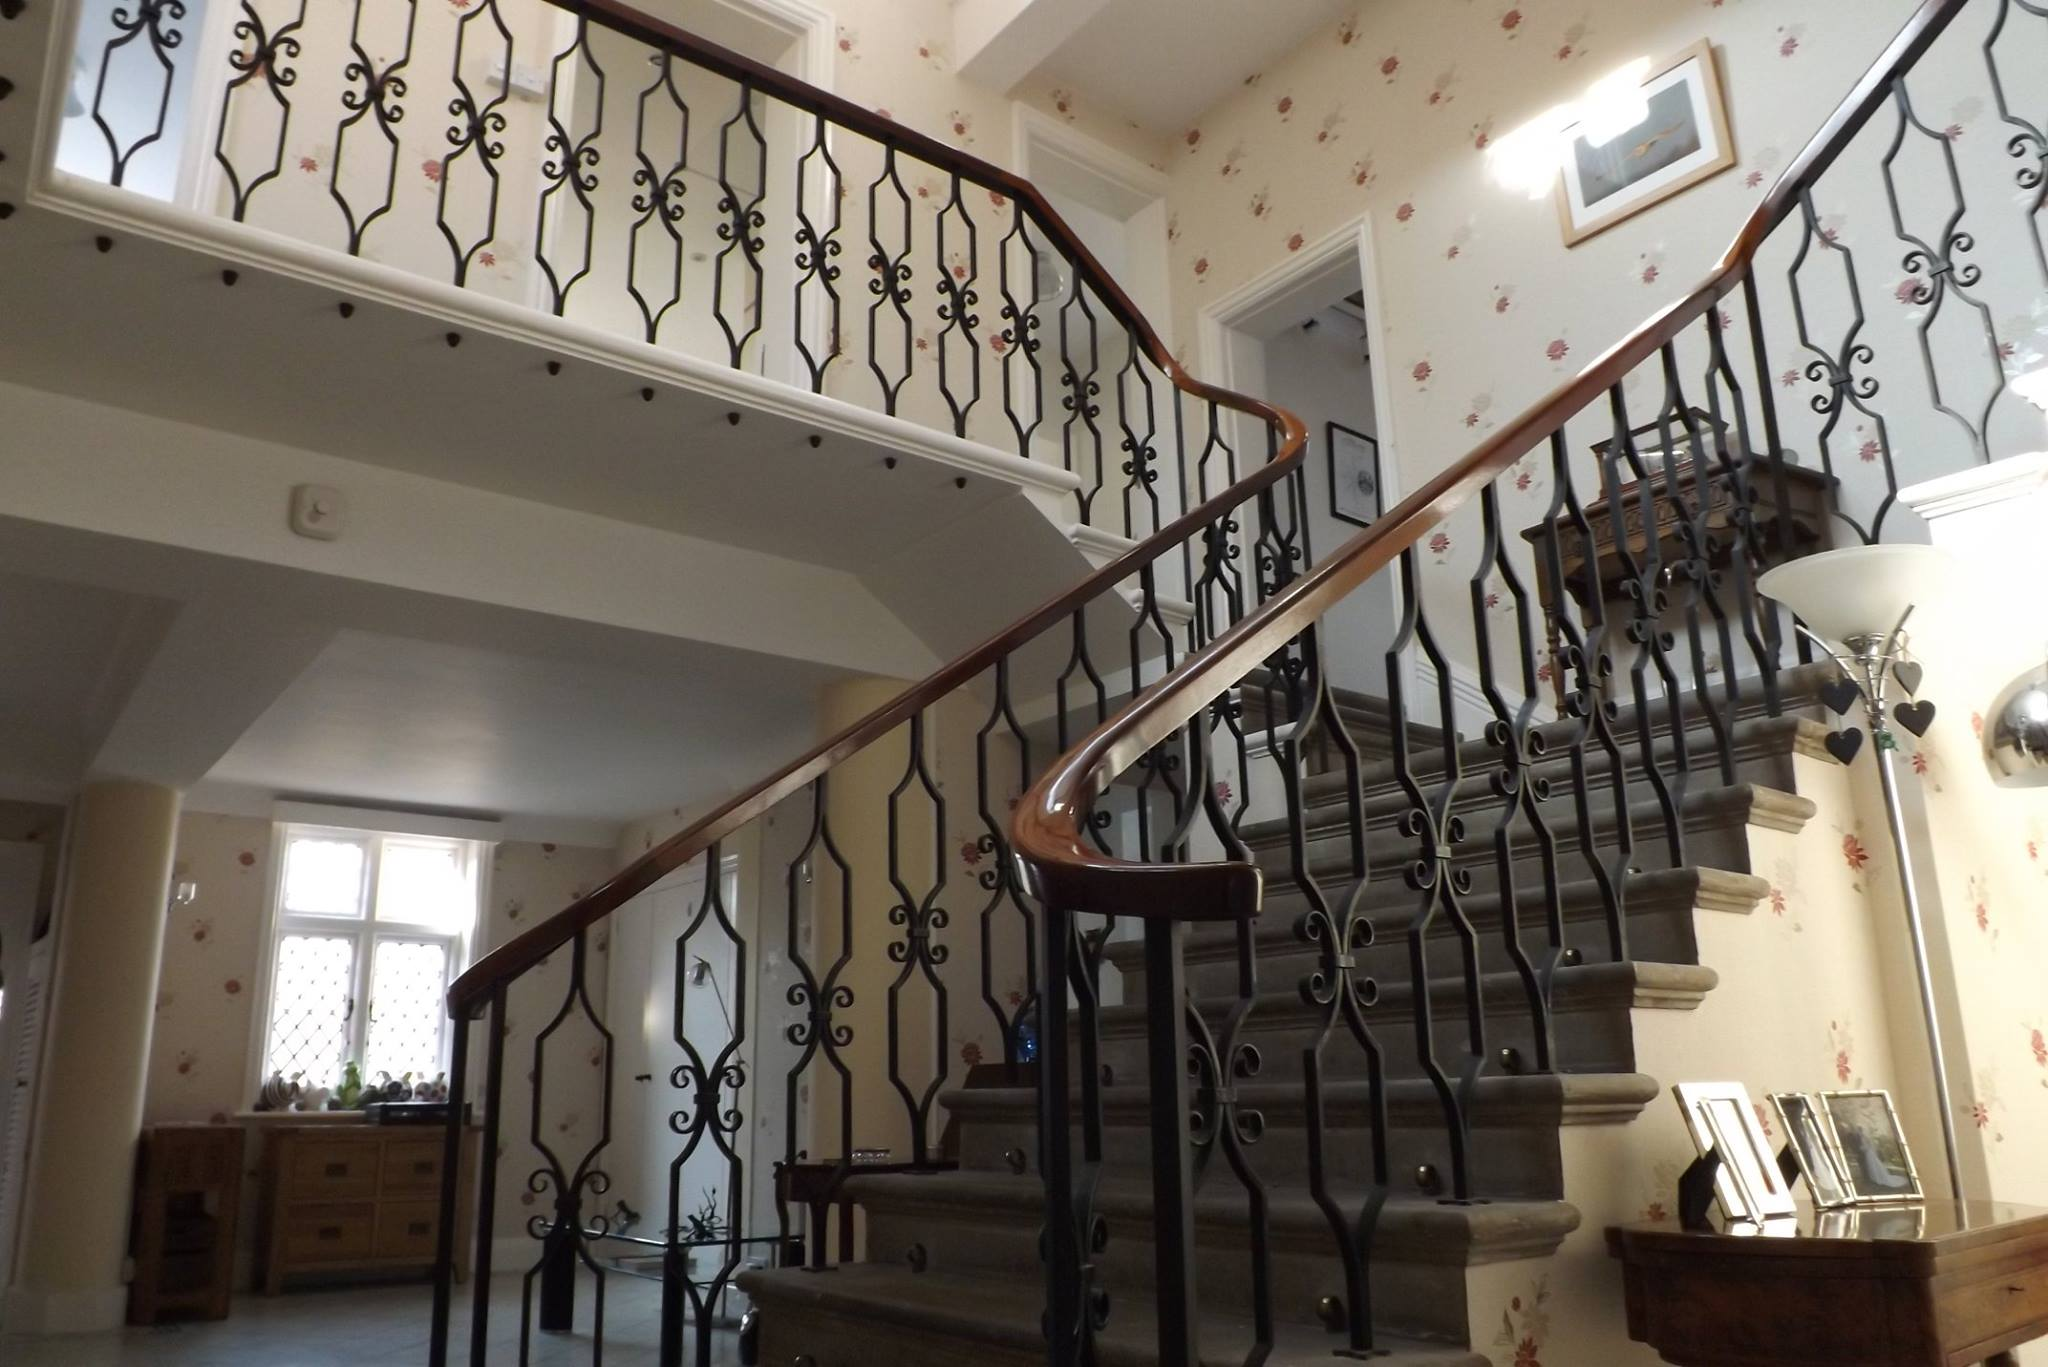 Macintosh HD:Users:rogerbateman:Desktop:Indian :2 Julia's staircase today. 'A staircase an army could march up' - something of an exaggeration but still very impressive.jpg